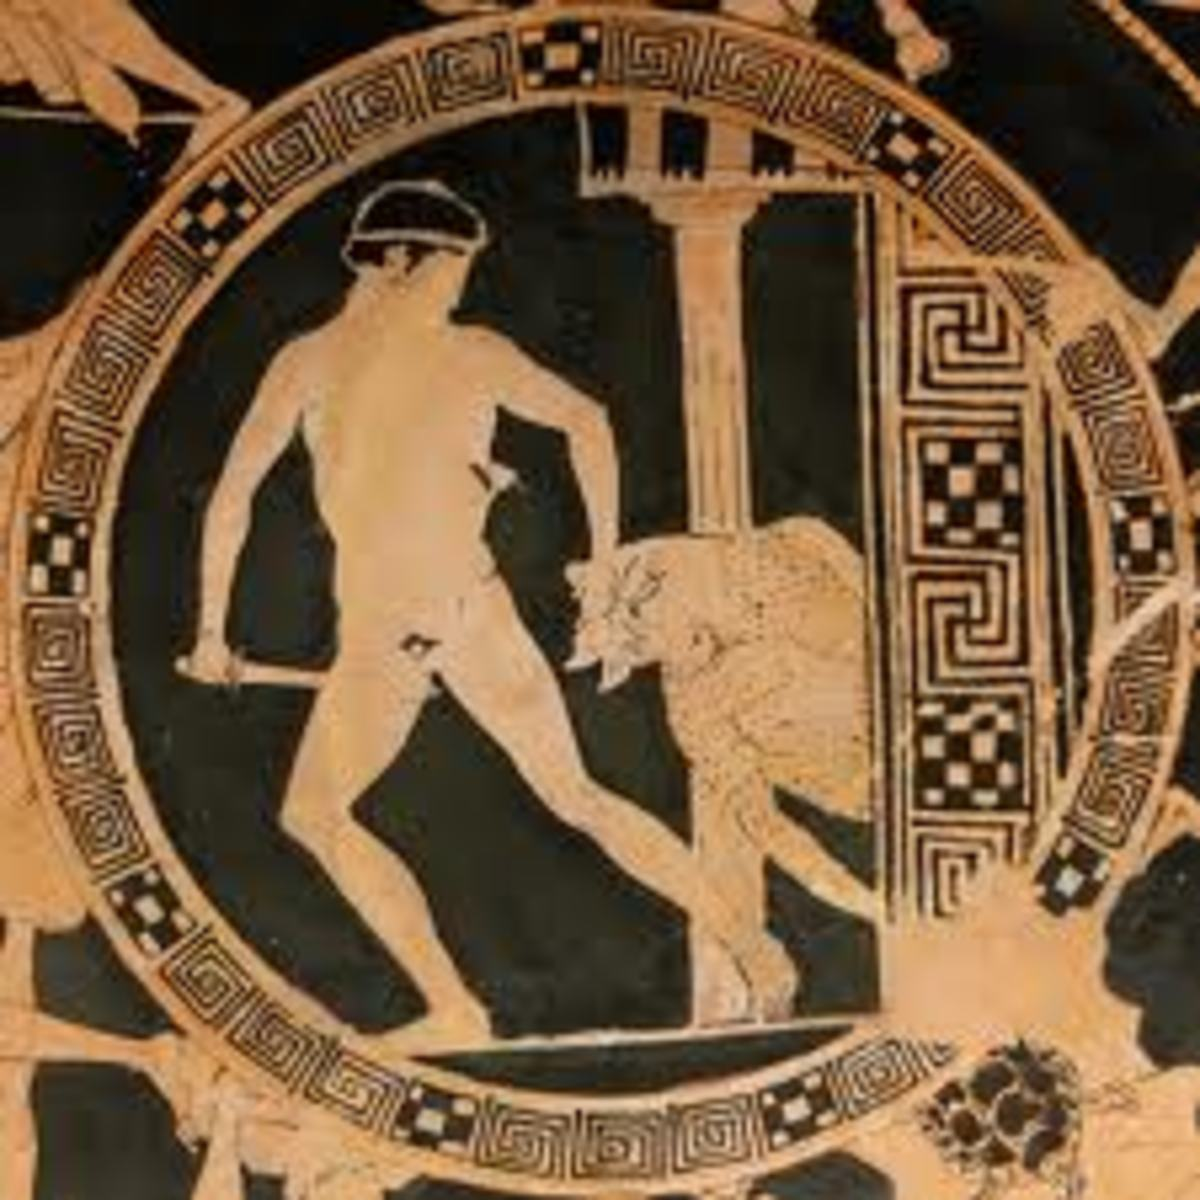 Theseus and Minotauros on vase